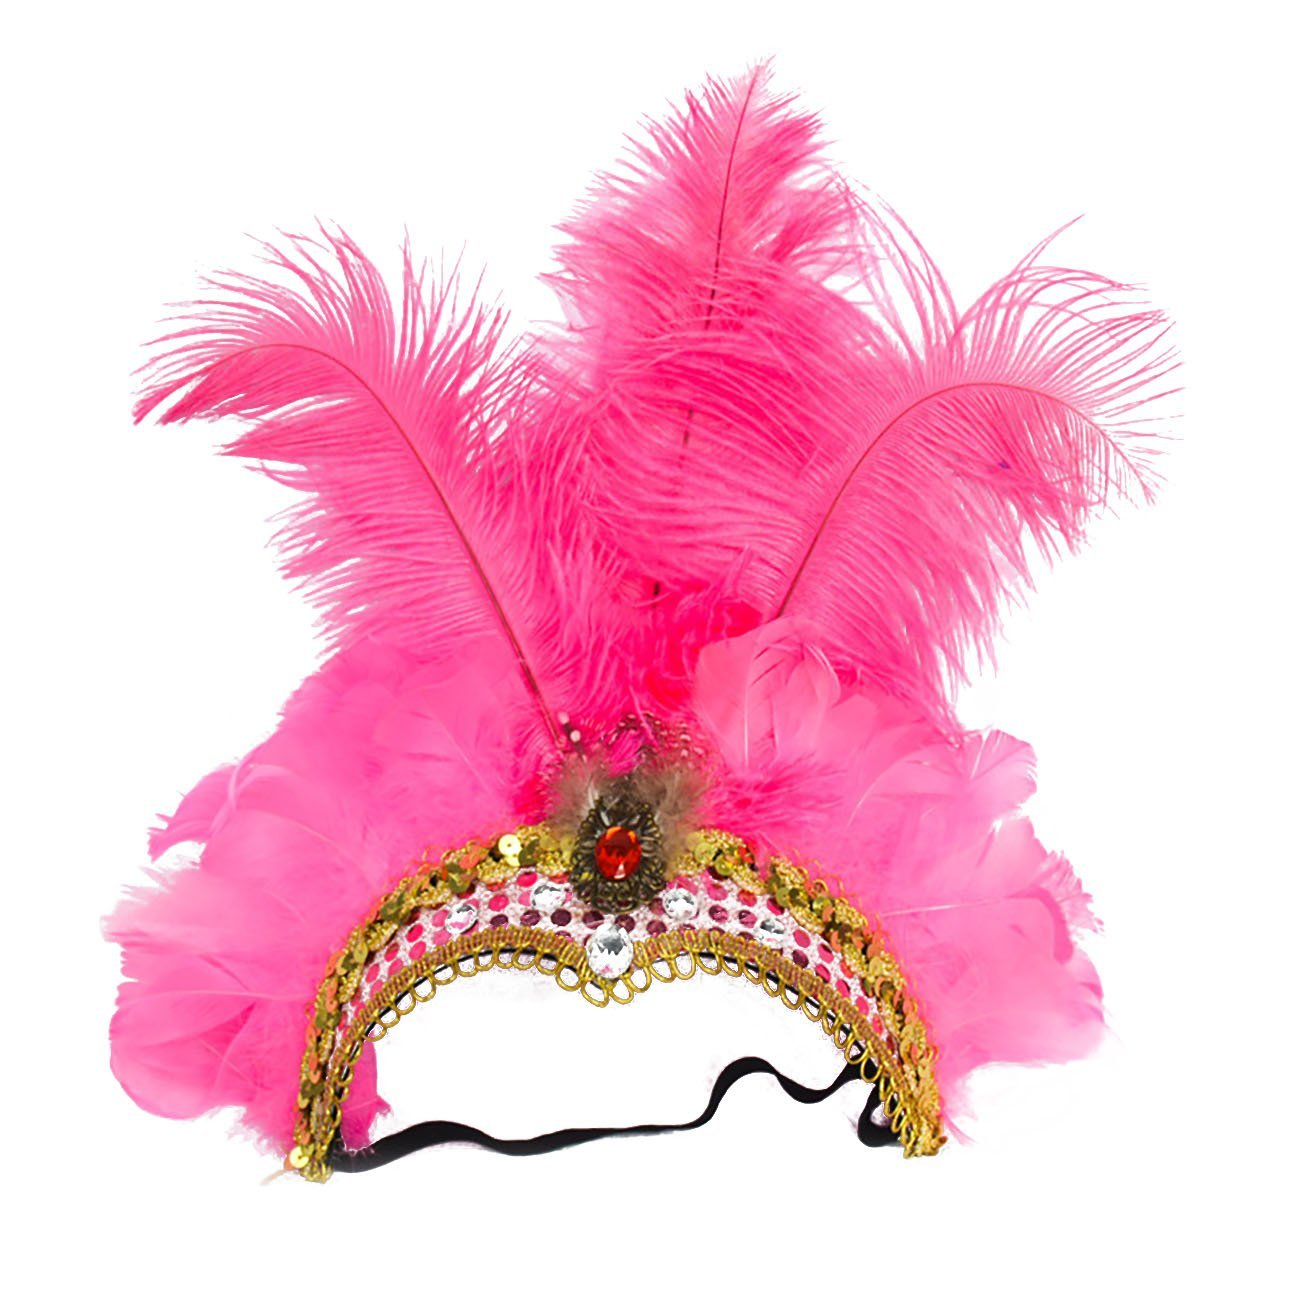 ShiyiUP Masquerade Ball Headwear Belly Dance Feathered Headgear WJPDZS1027pk